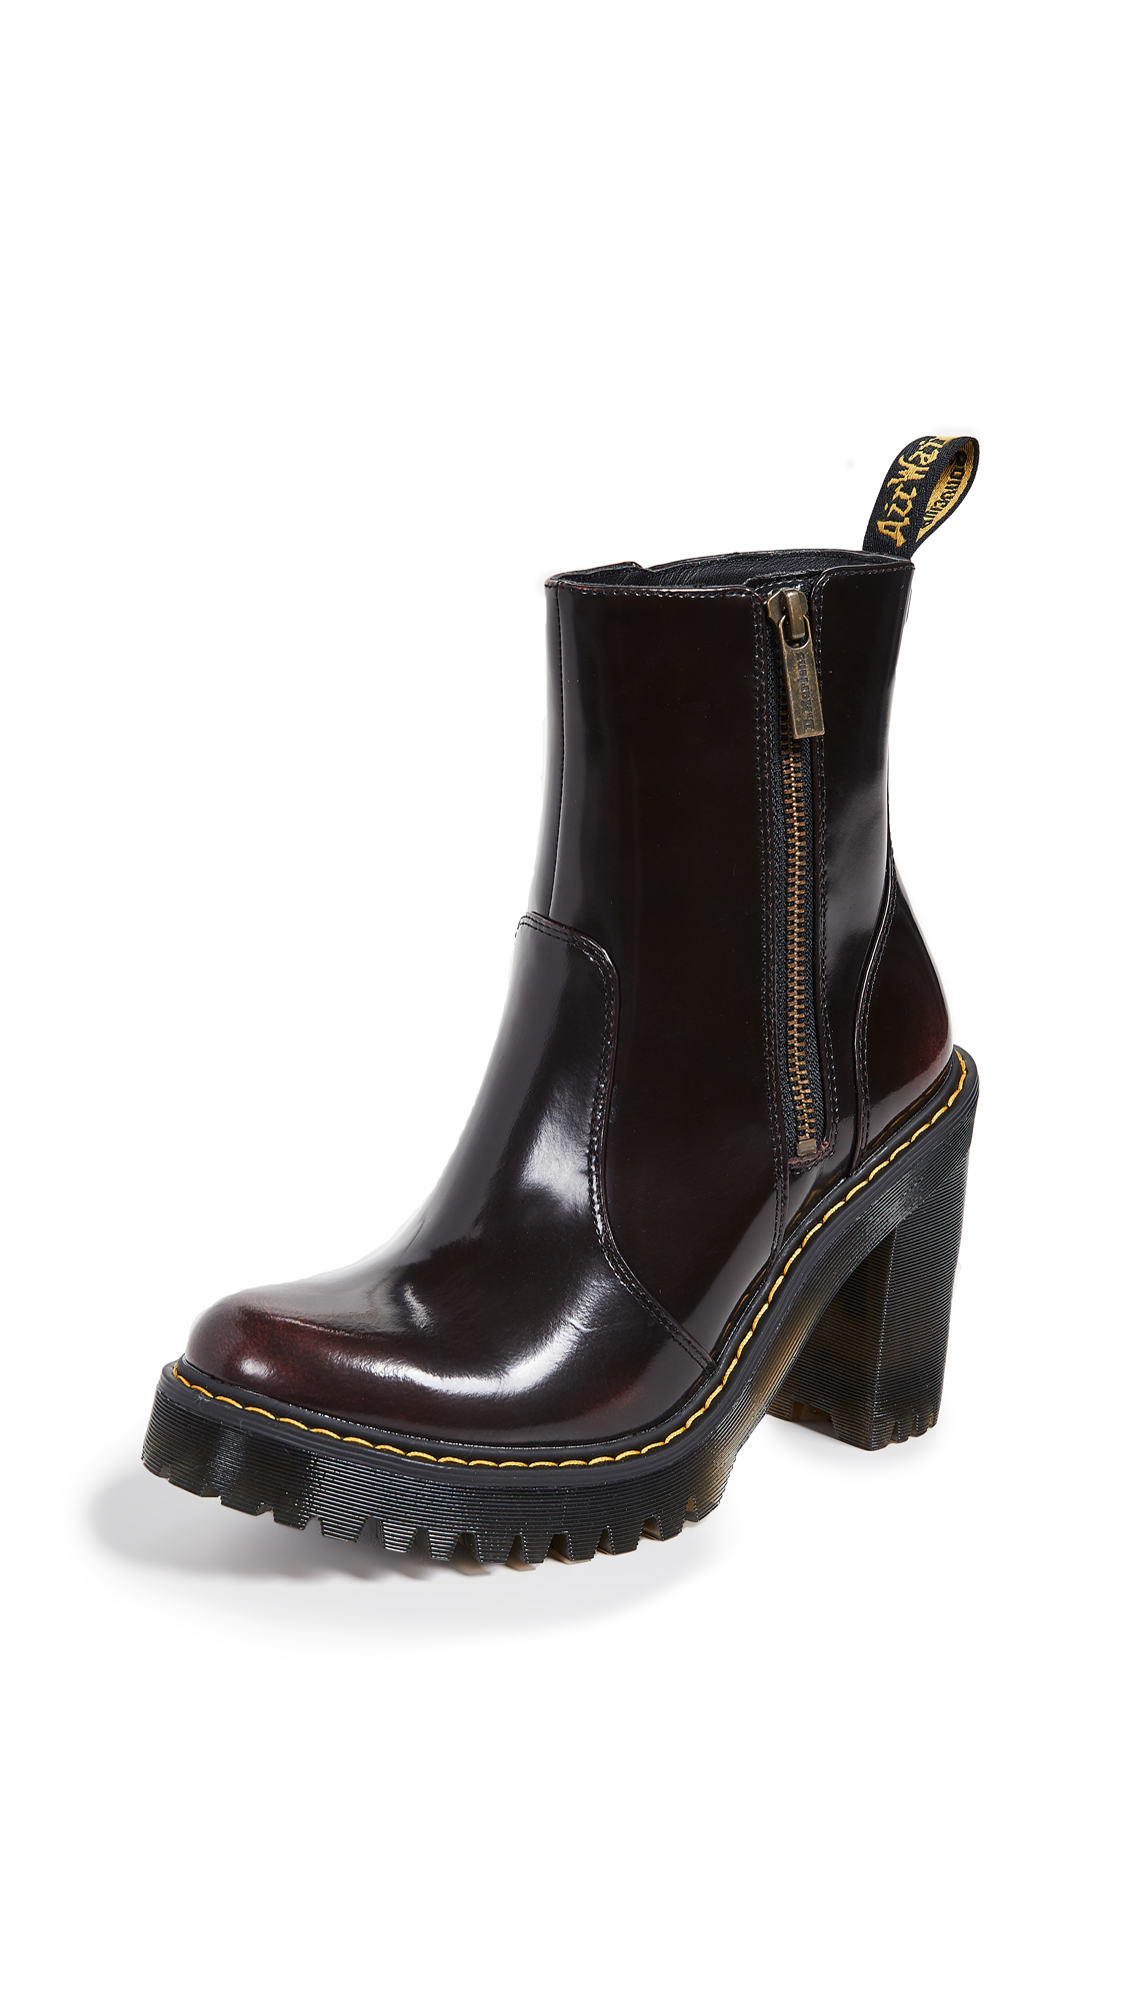 Dr. Martens Magdalena II Ankle Boots - Cherry Red